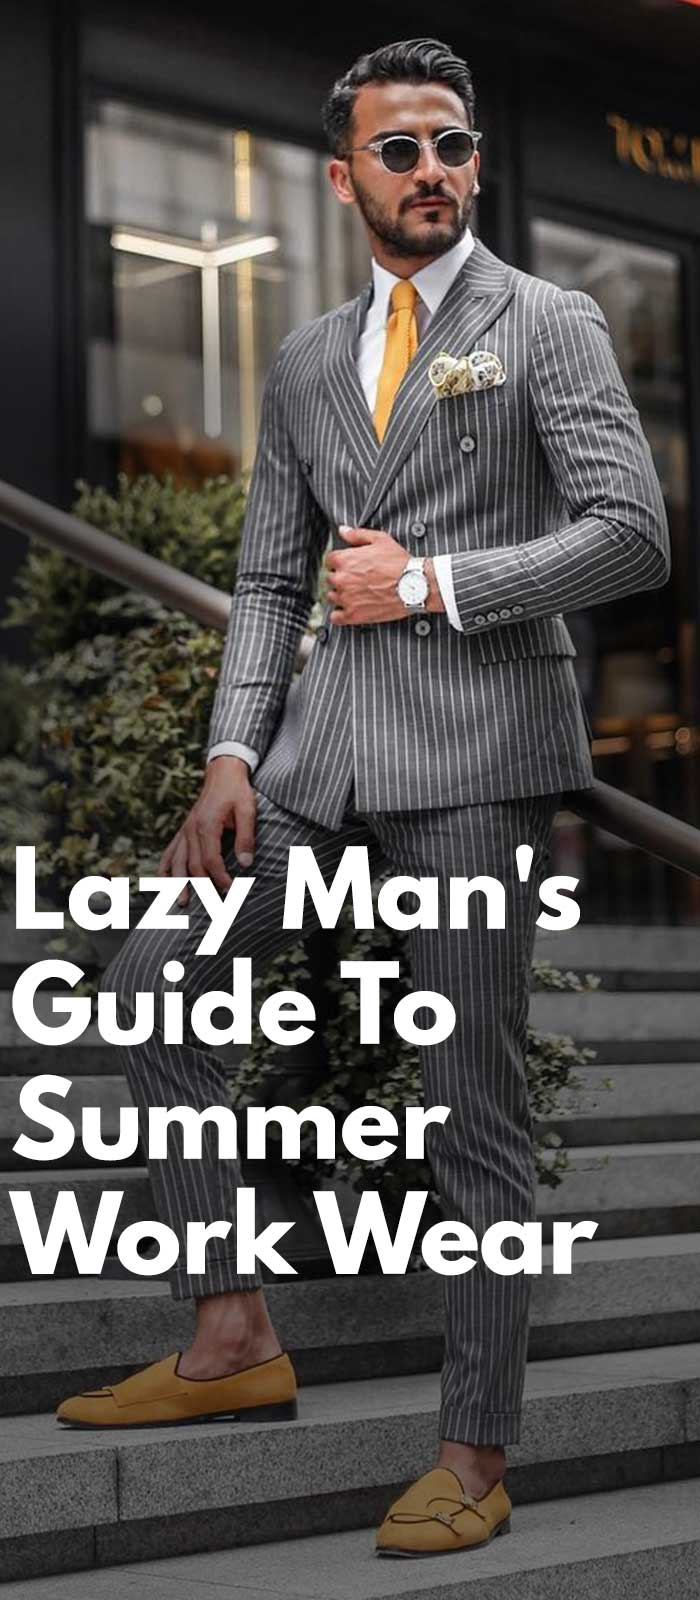 Lazy Man's Guide To Summer Work Wear